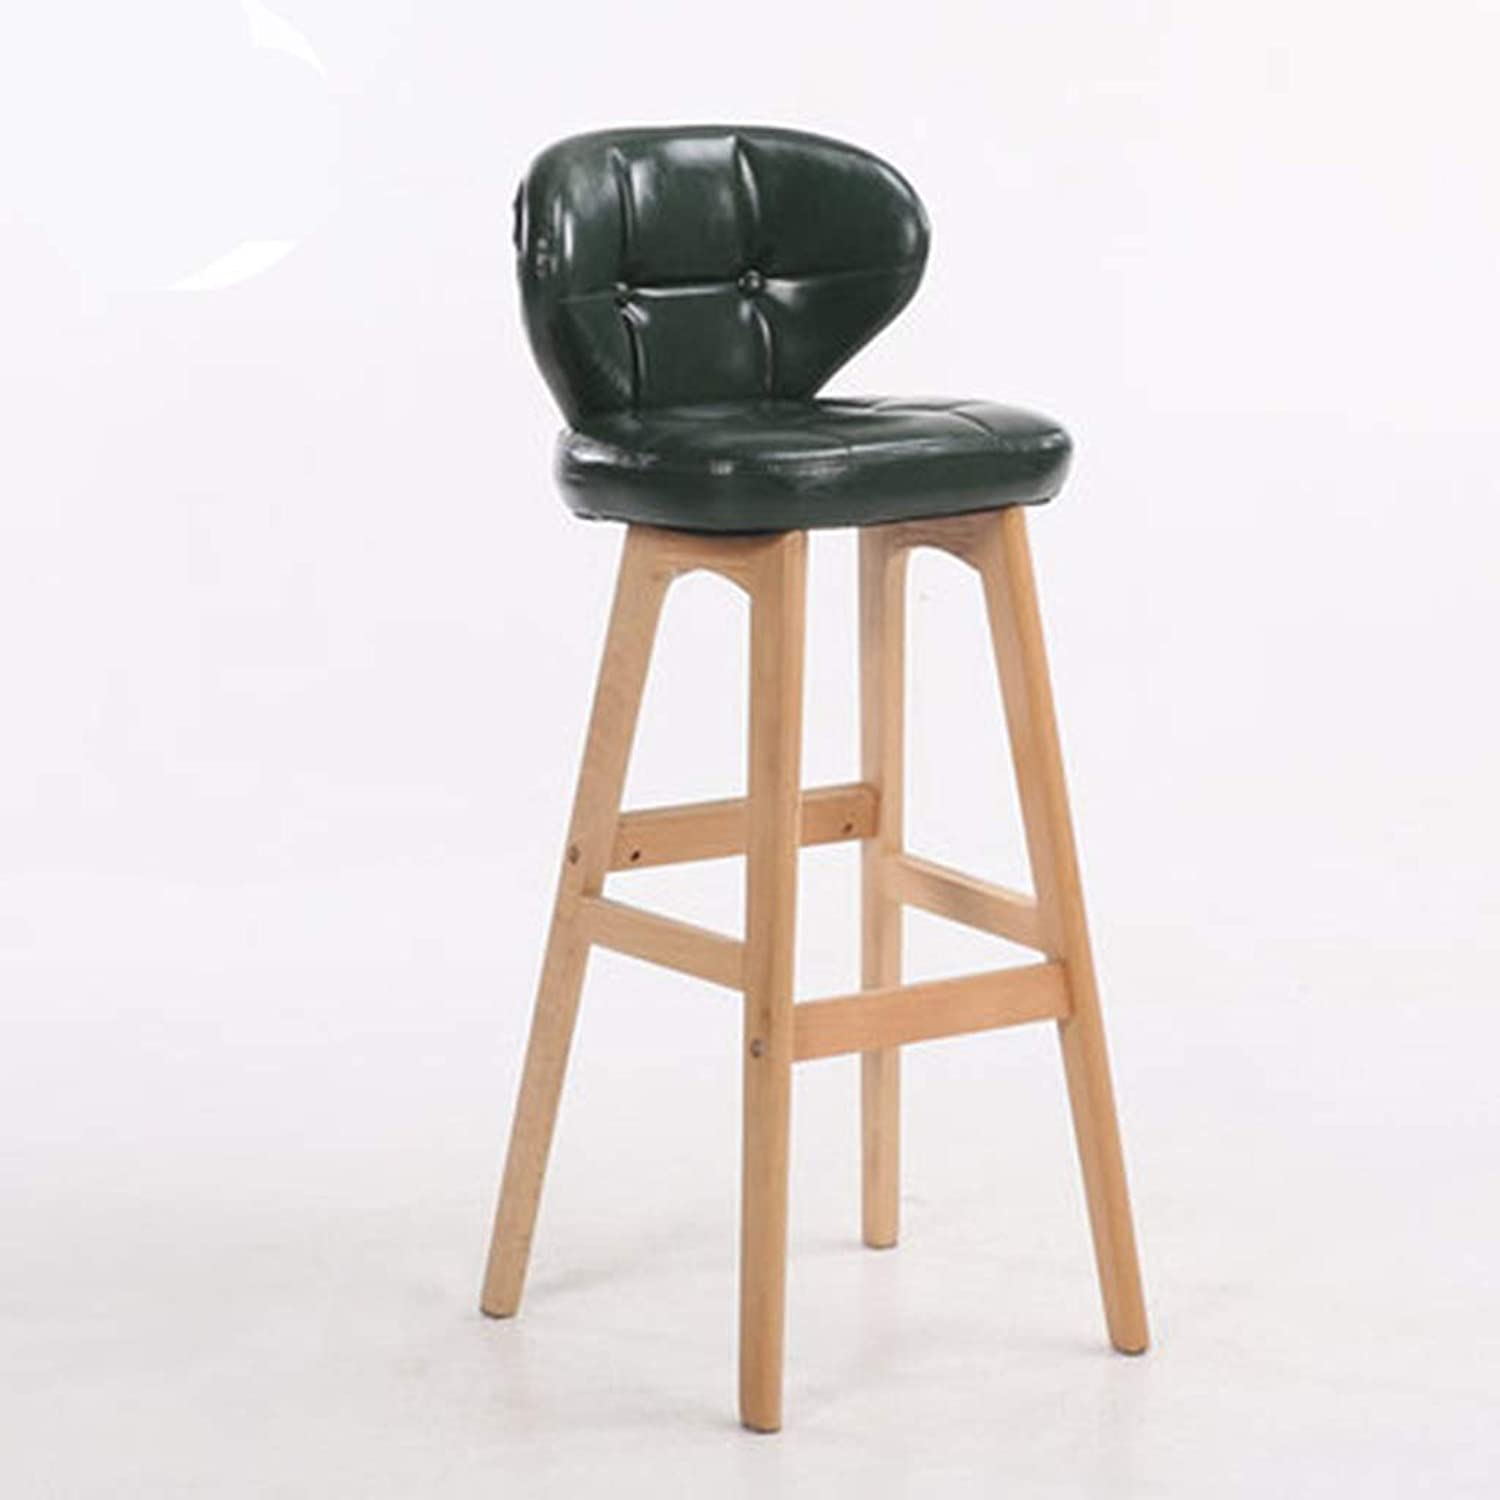 Barstools - Creative Cafe Bar Stool European Style Iron Art High Foot Chair Solid Wood Leather Seat Counter Leisure Office Household 0426A (color   Green (Wood), Size   68cm Seat Height)